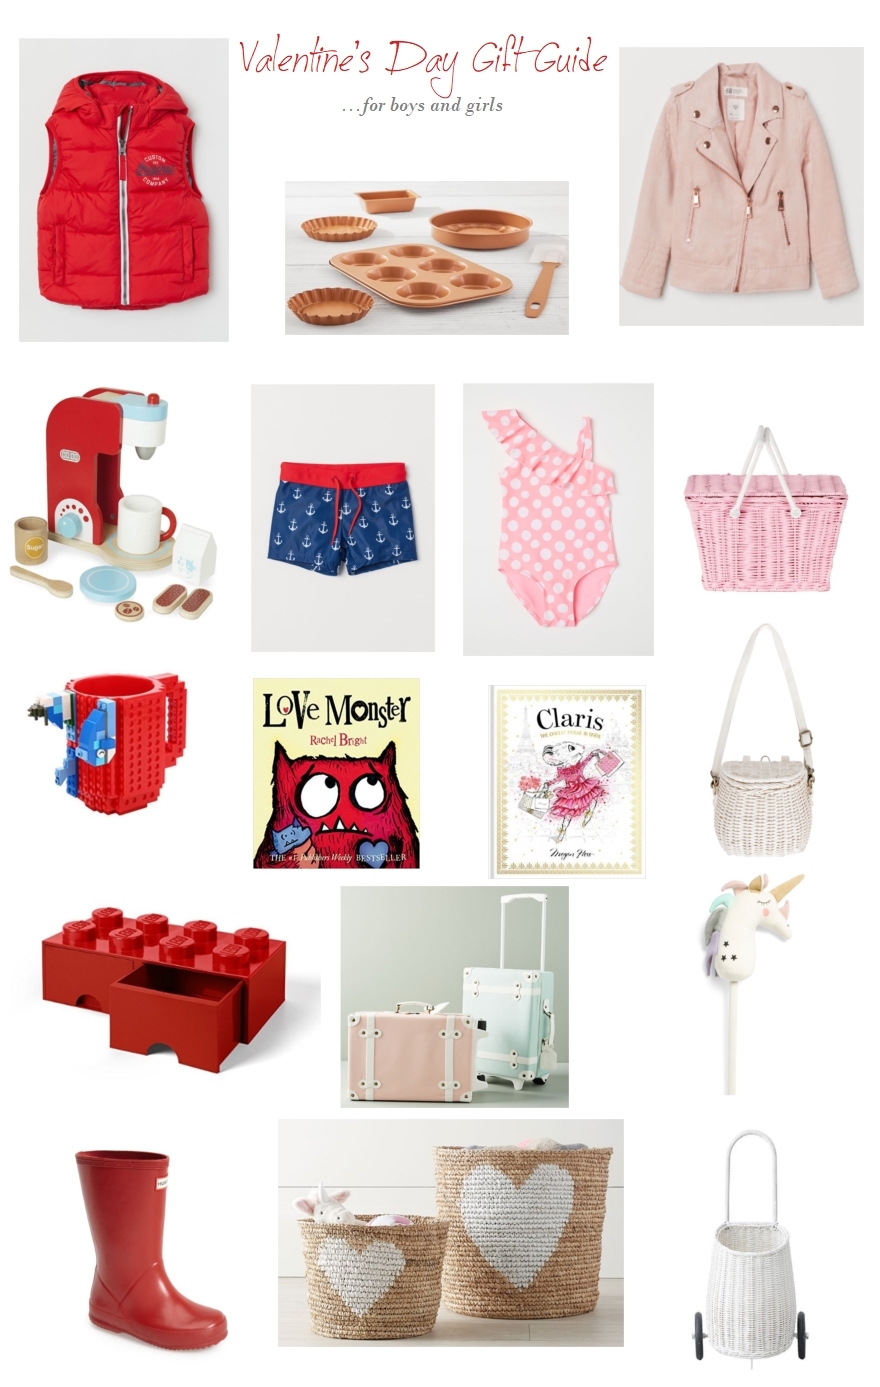 Valentine's Day Gift Guide for Kids...